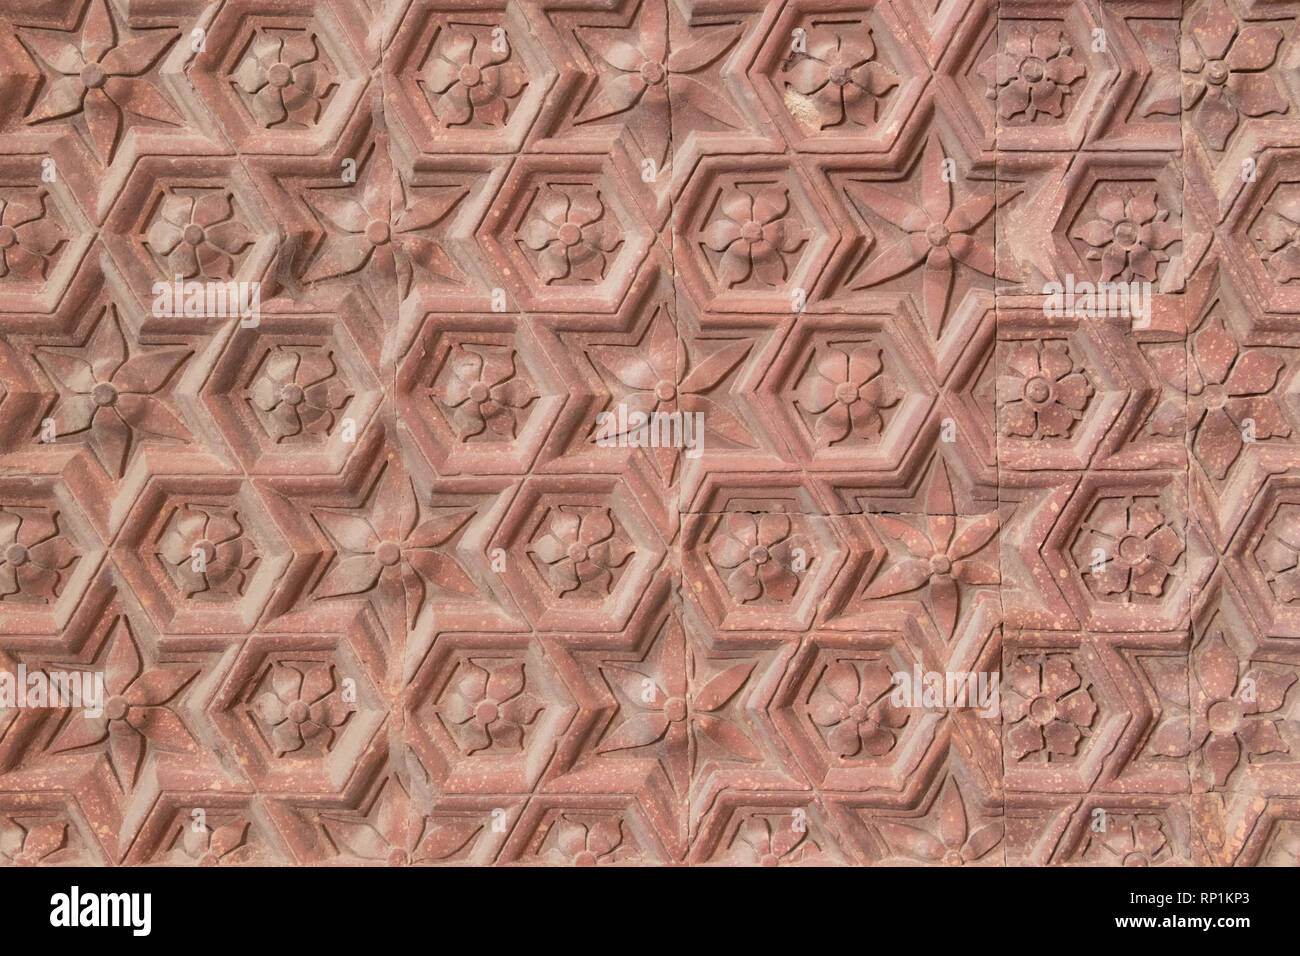 Wall of Qutub Minar, carving in Kufic style of Islamic